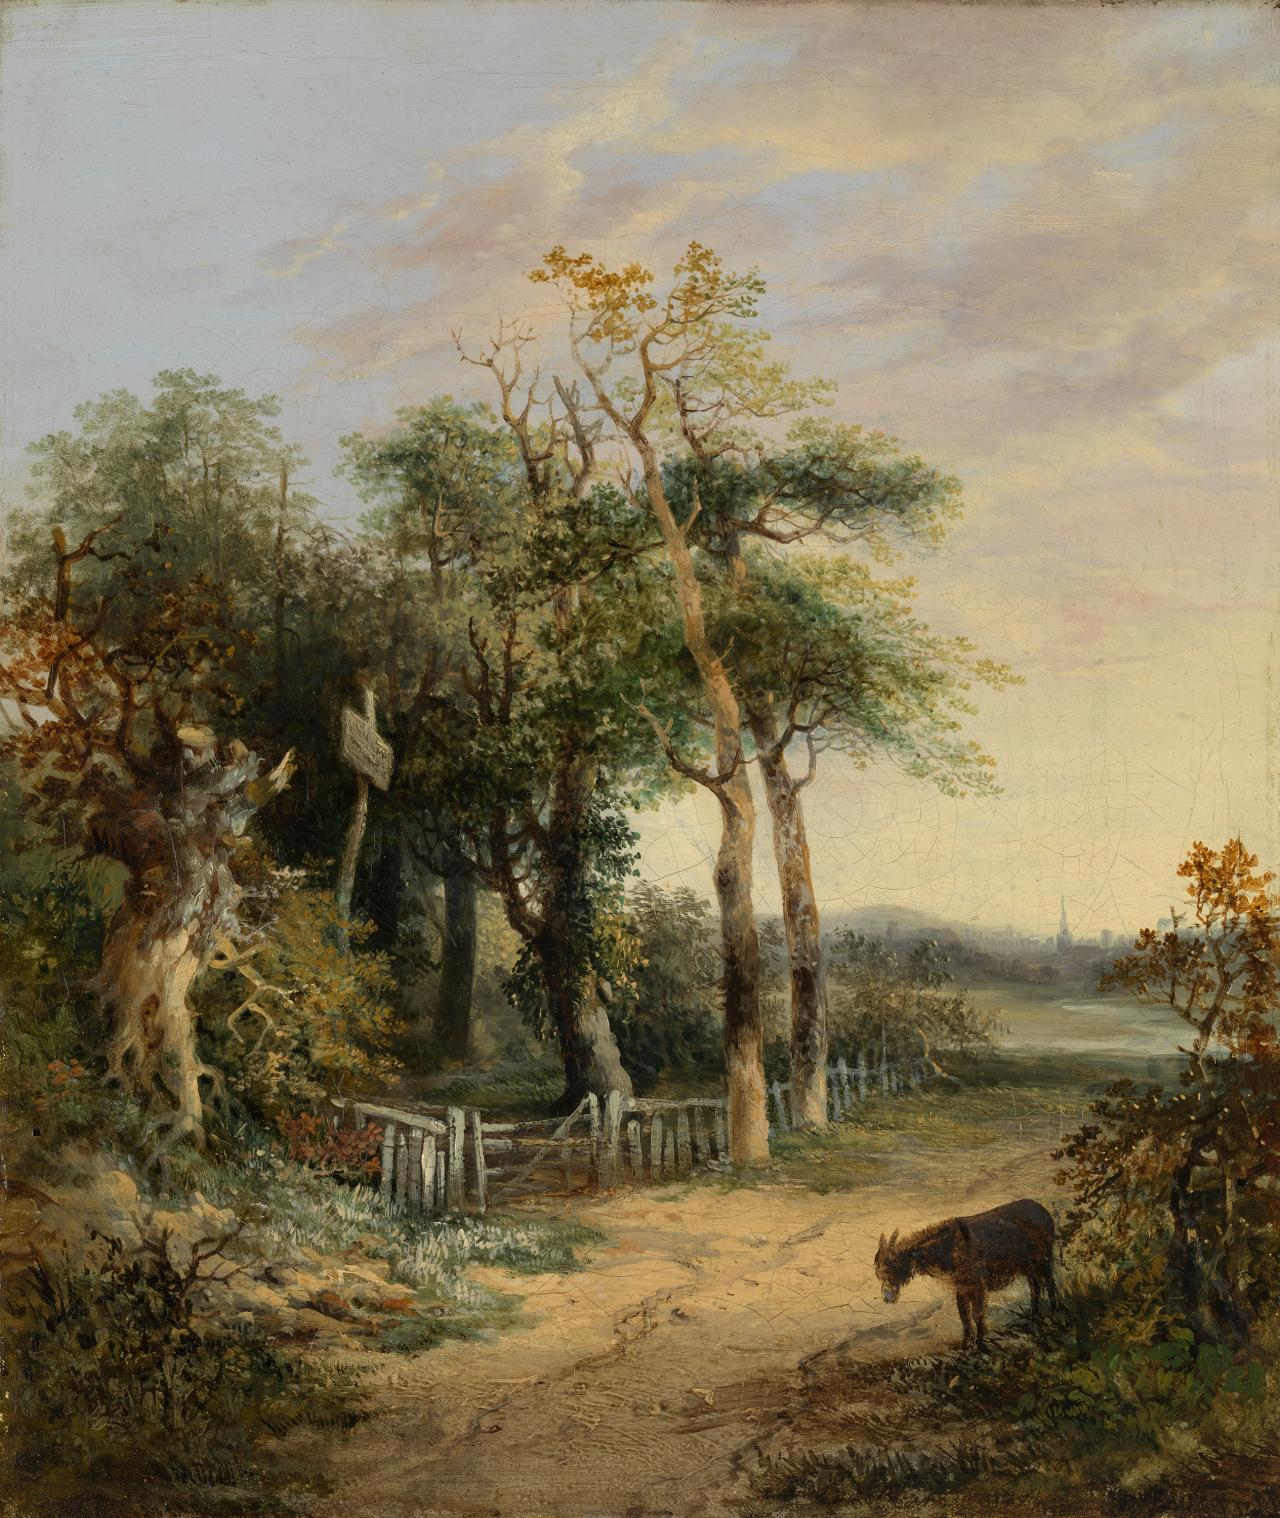 Landscape with a donkey